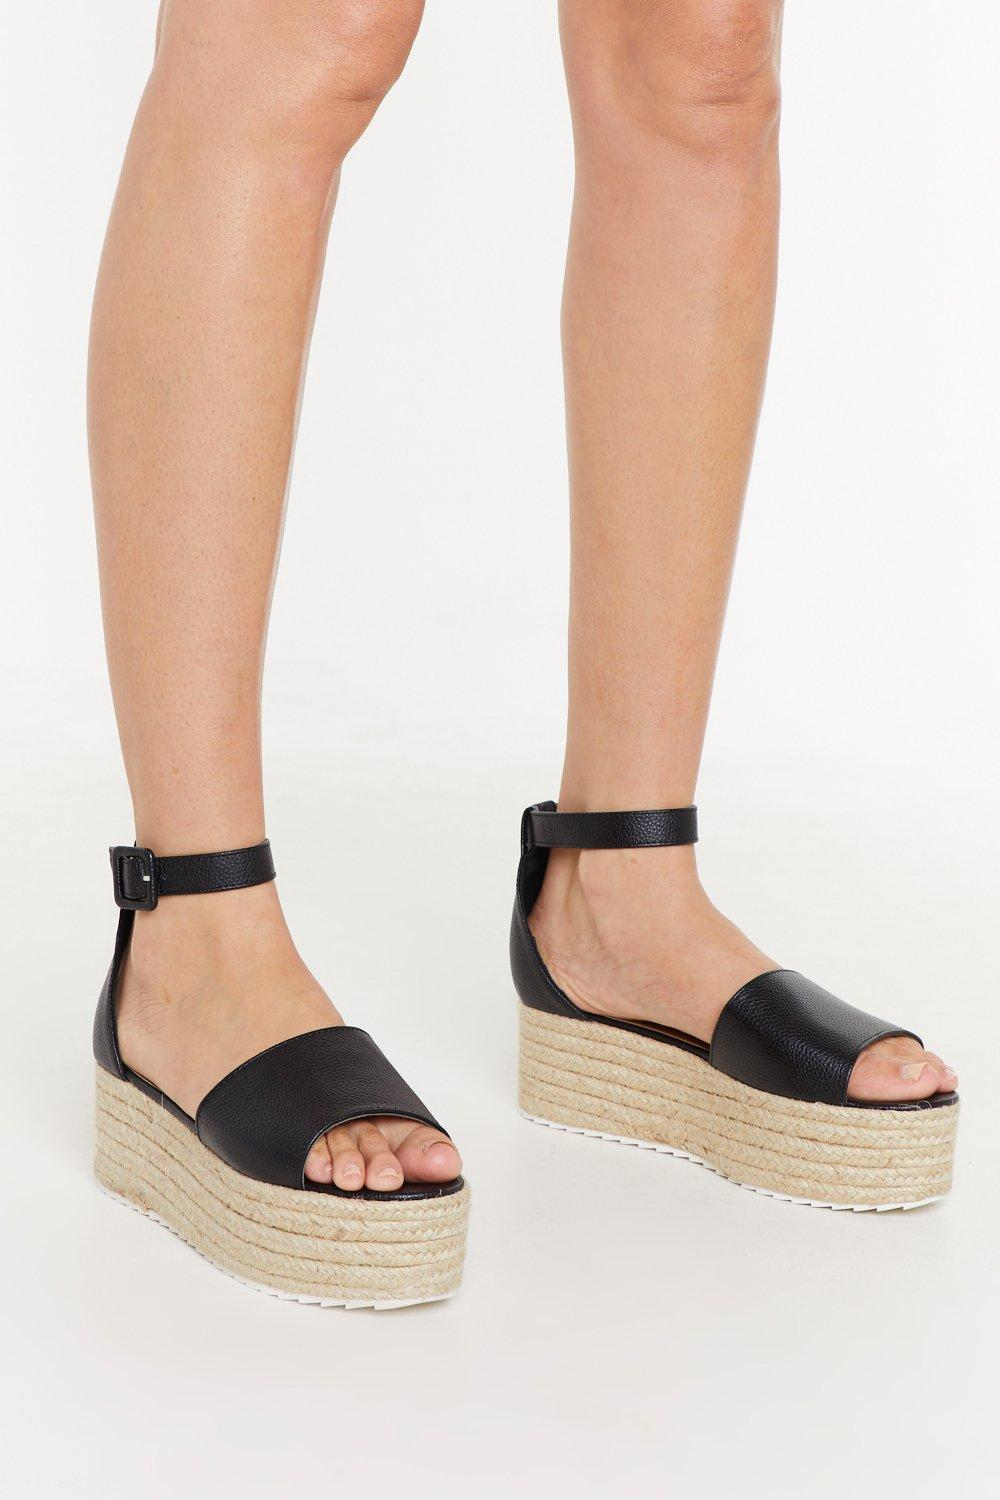 135aefdb On the Faux Leather Espadrille Platform Sandals   Shop Clothes at Nasty Gal!